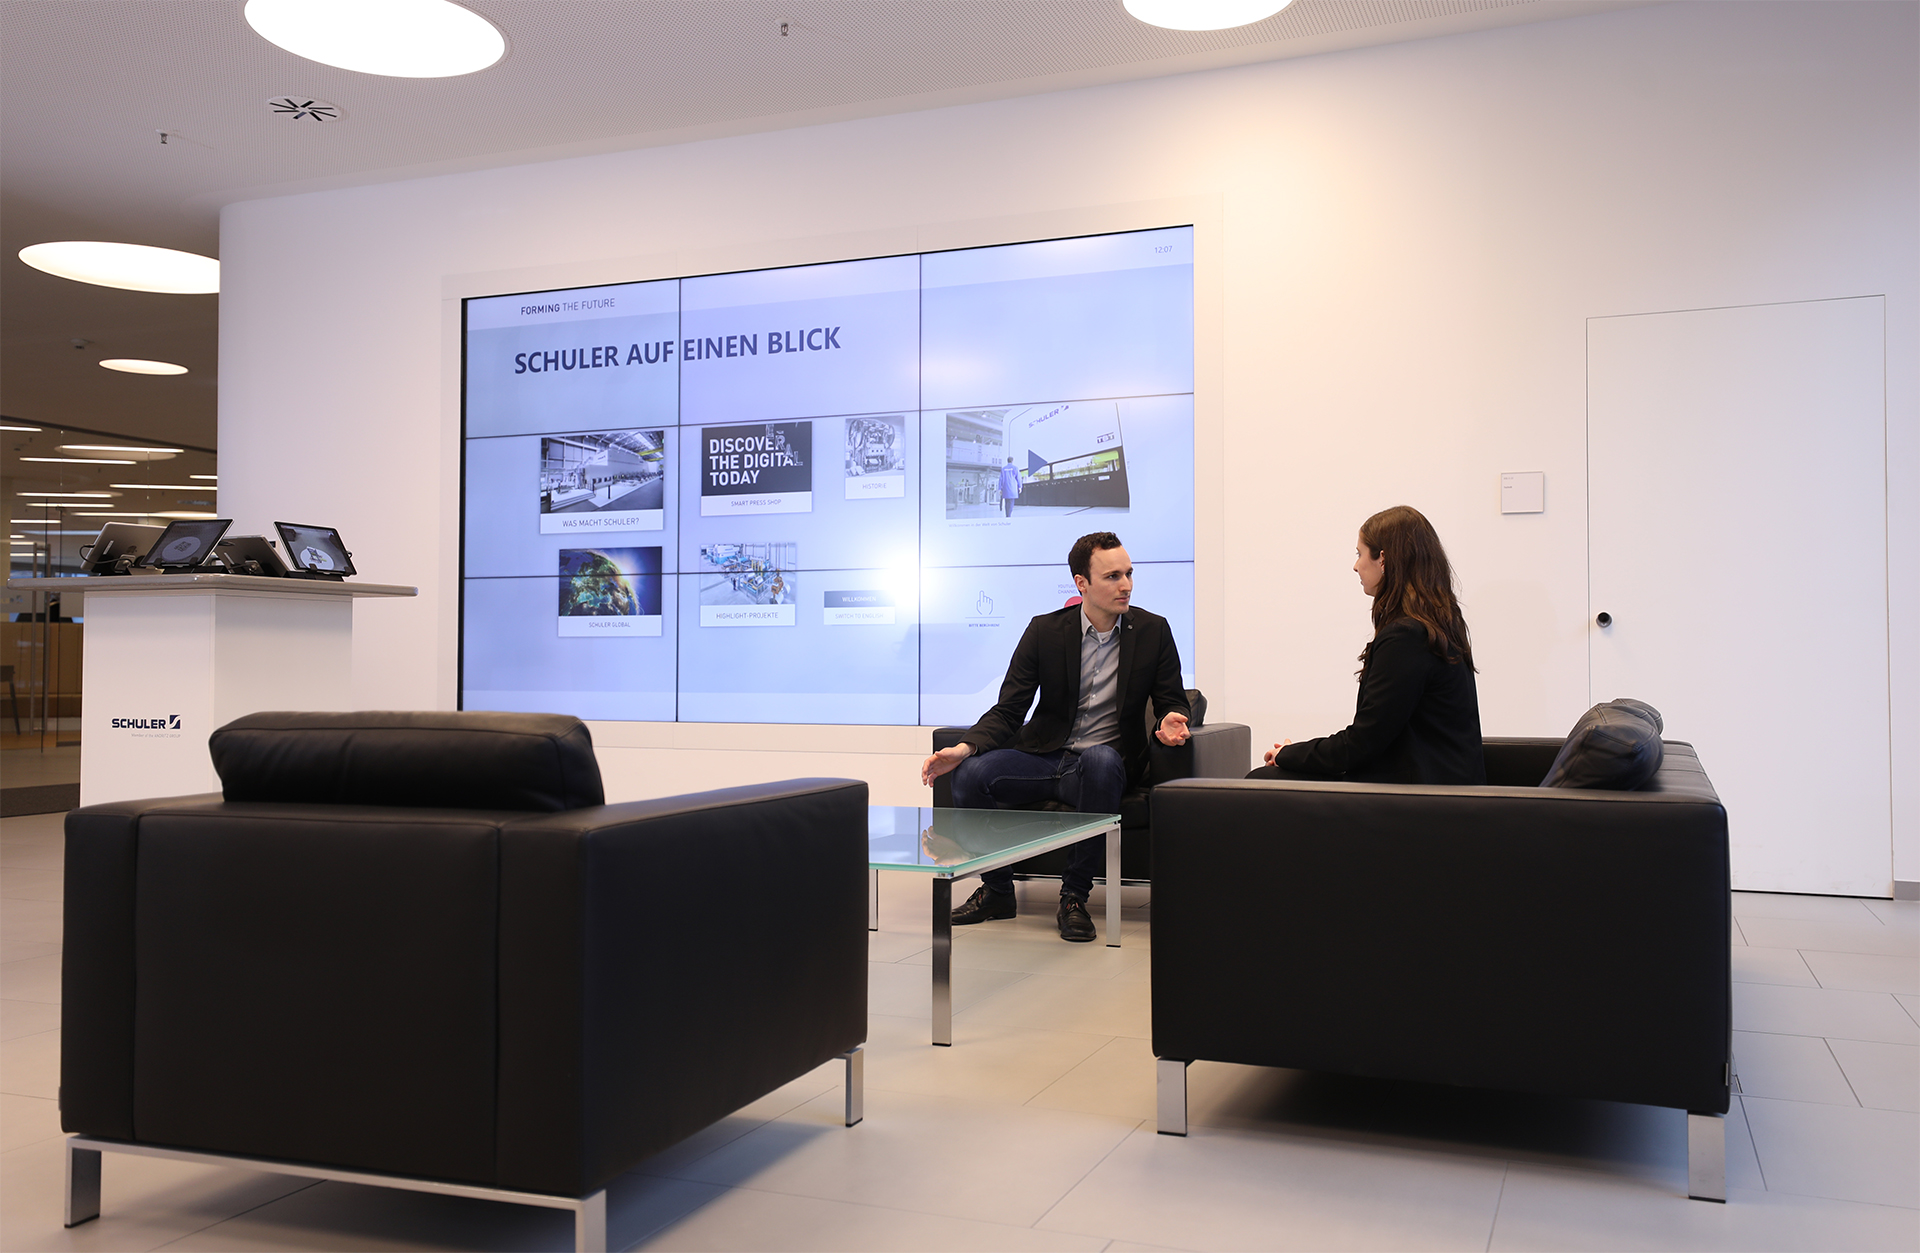 In the entrance area, a seating area invites you to spend some time with colleagues or visitors. An impressive large screen in the form of an interactive multi-touch Powerwall stages the Schuler brand and its products there. Tailor-made user interfaces powered by smartPerform inform about the company's considerable history, show examples of applications in the various market segments or provide a glimpse of highlight projects.